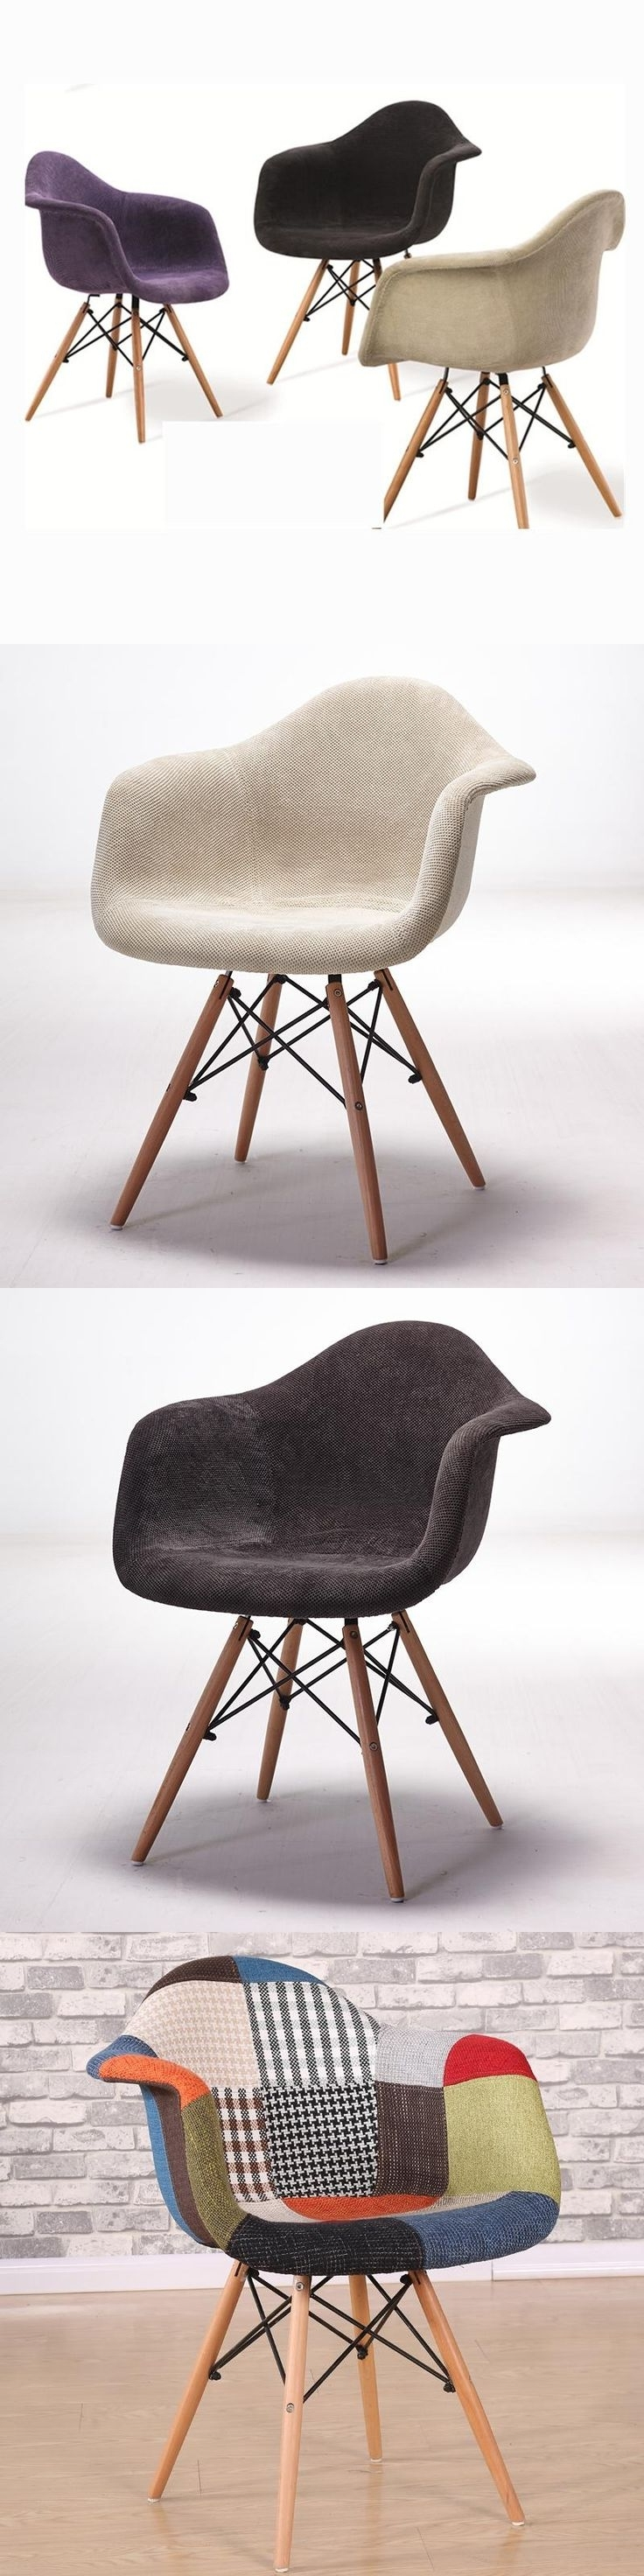 61 Best Home Furniture Images On Pinterest (View 22 of 25)